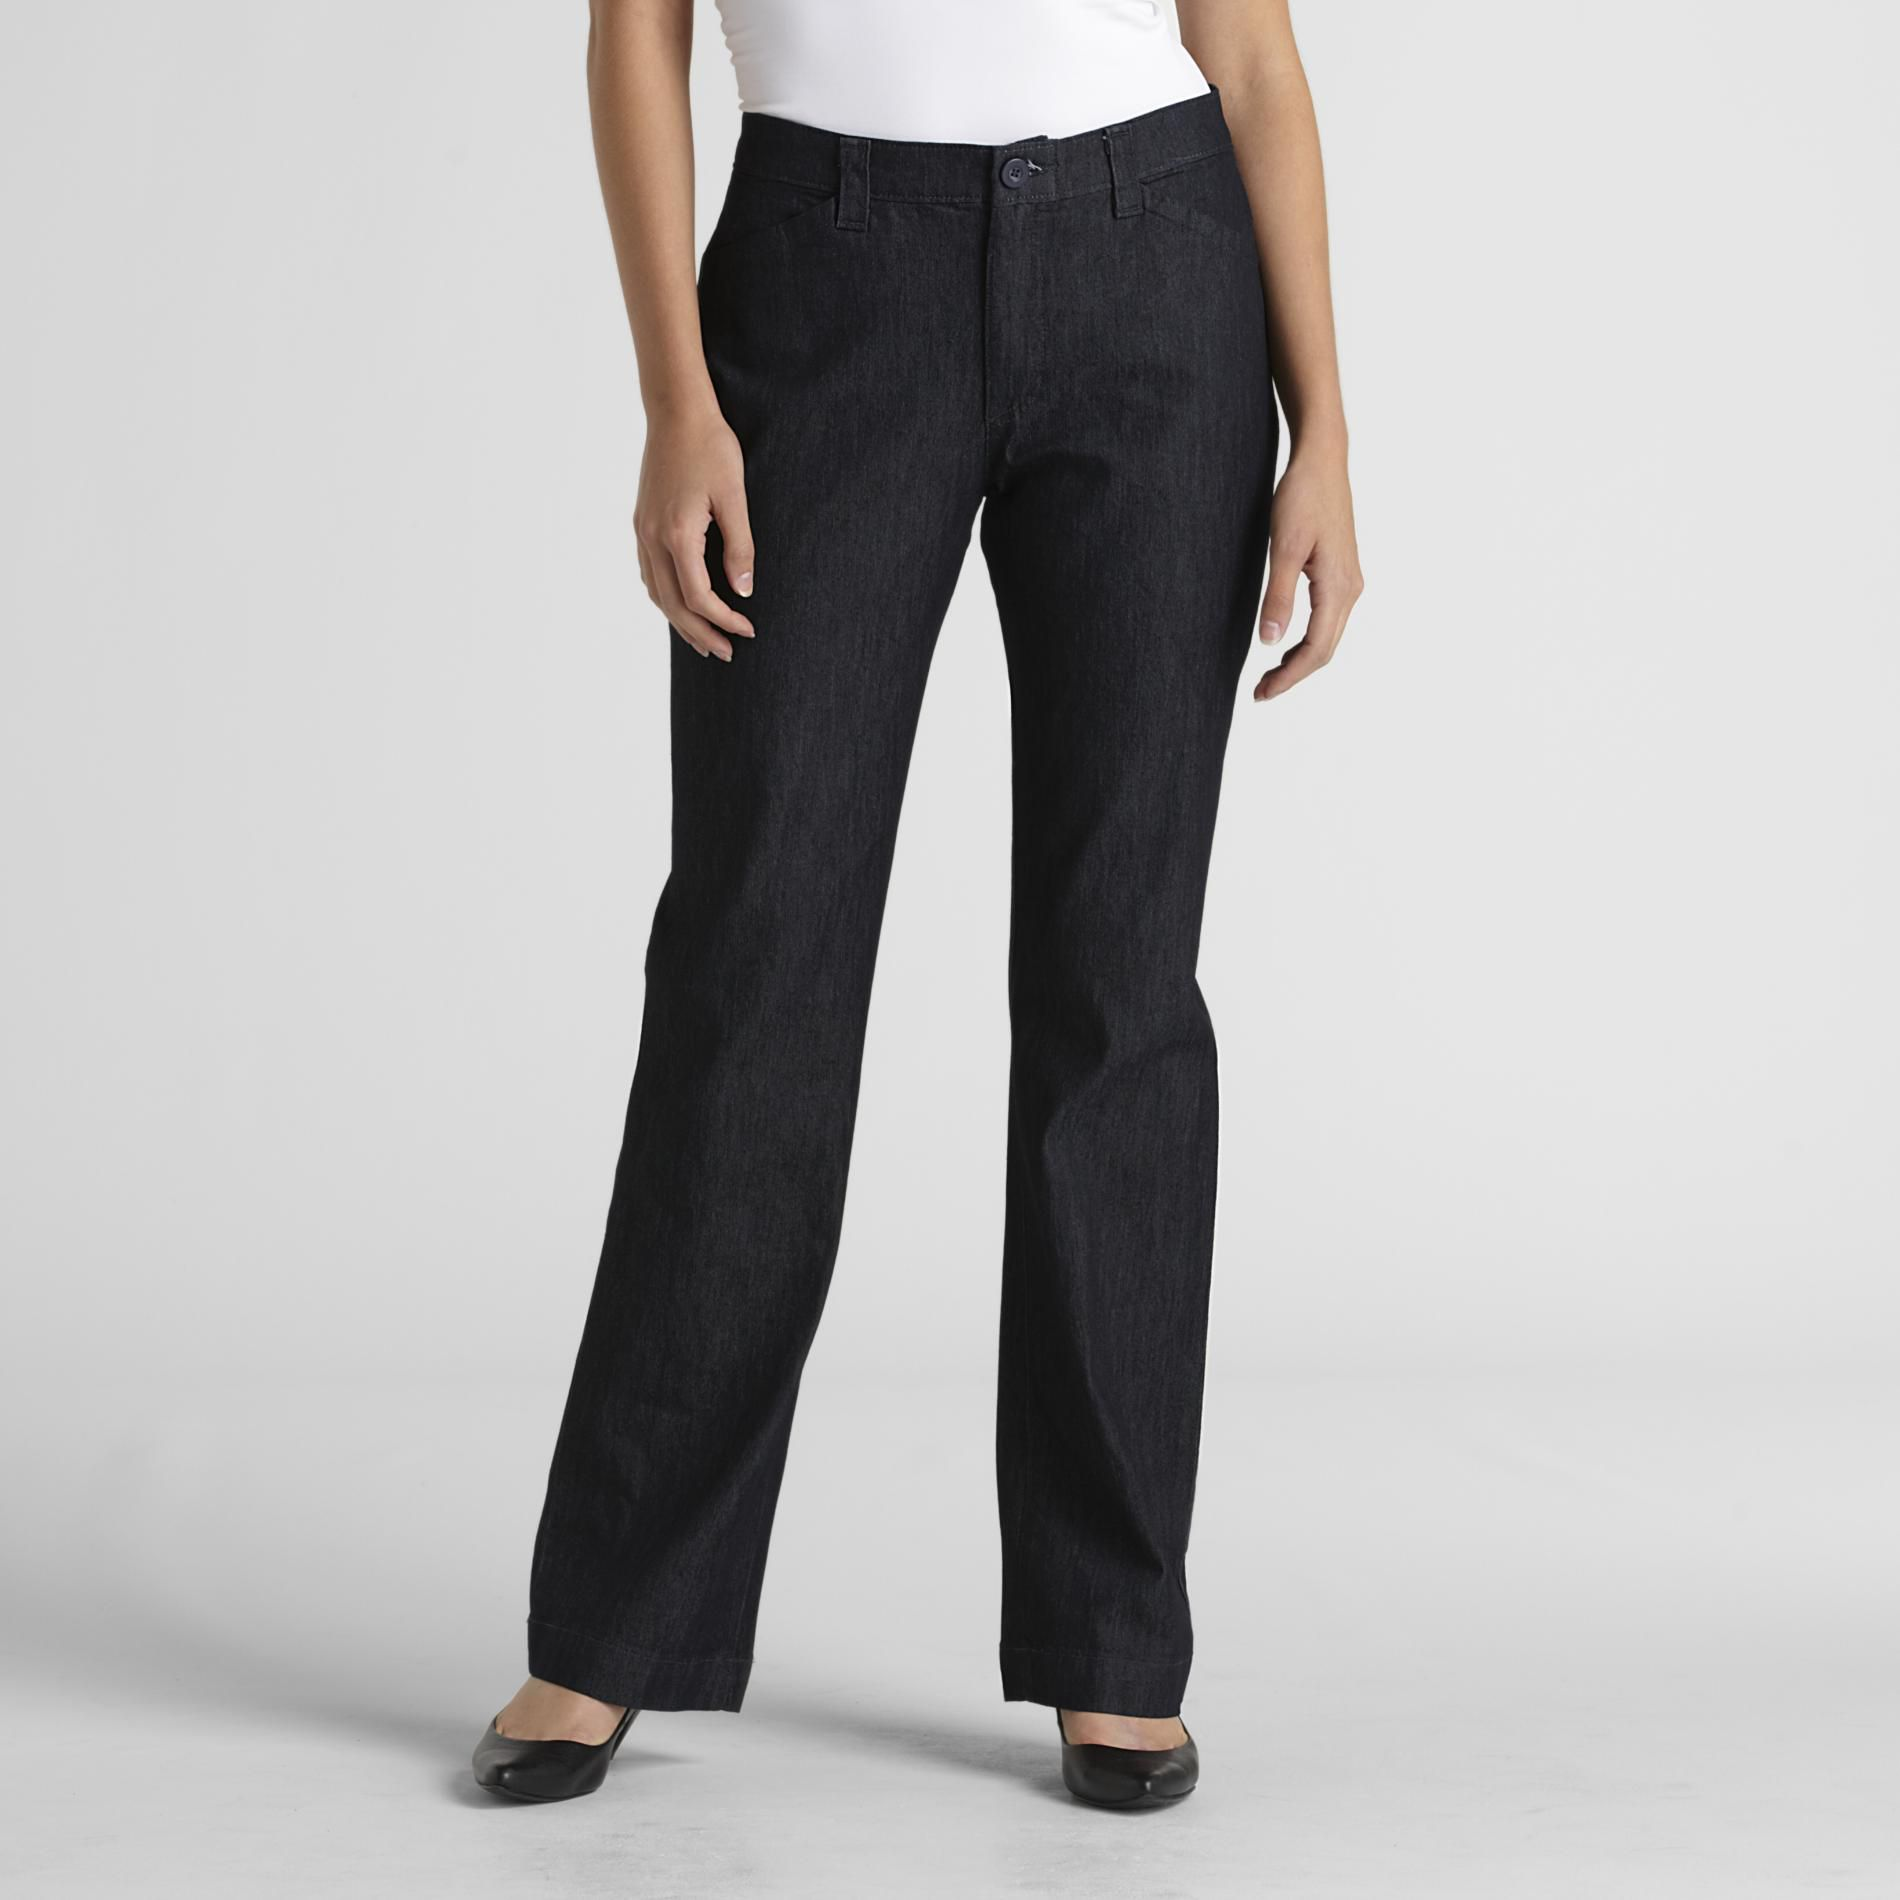 LEE Women's Comfort-Fit Denim Pants at Sears.com